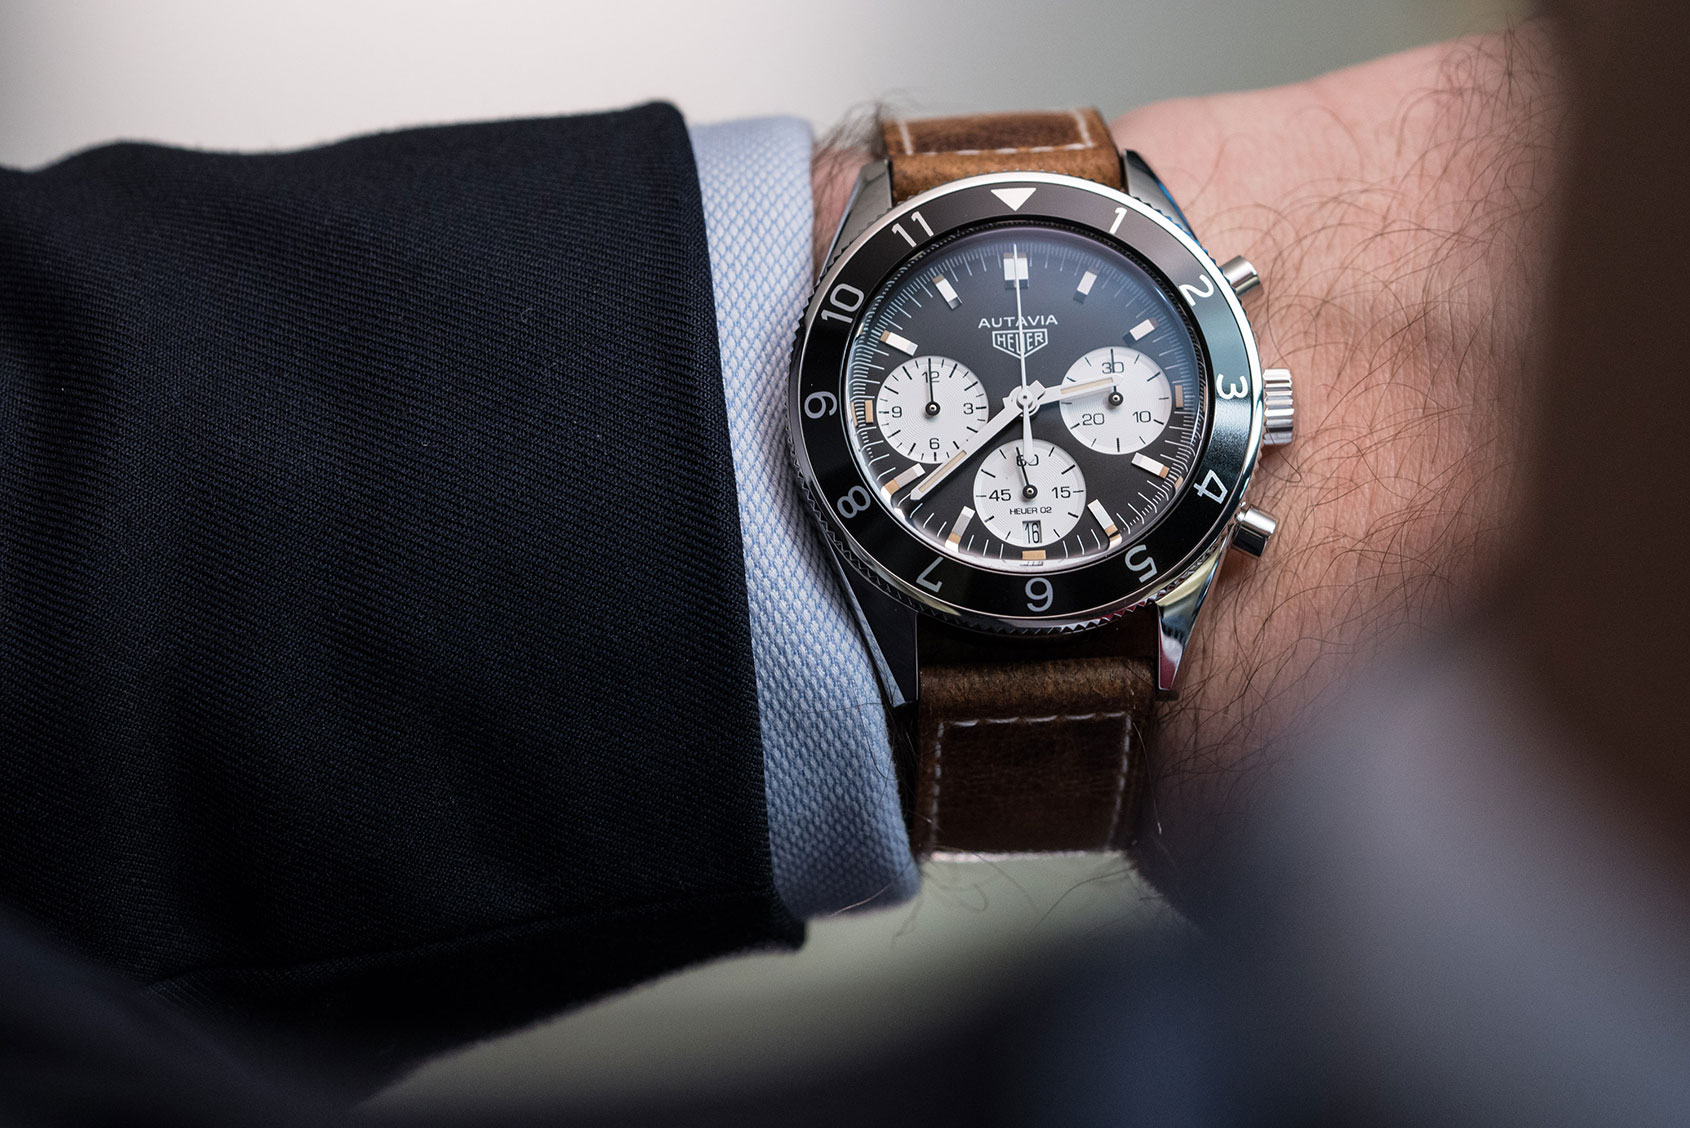 HANDS-ON: Return of an icon – the TAG Heuer Autavia